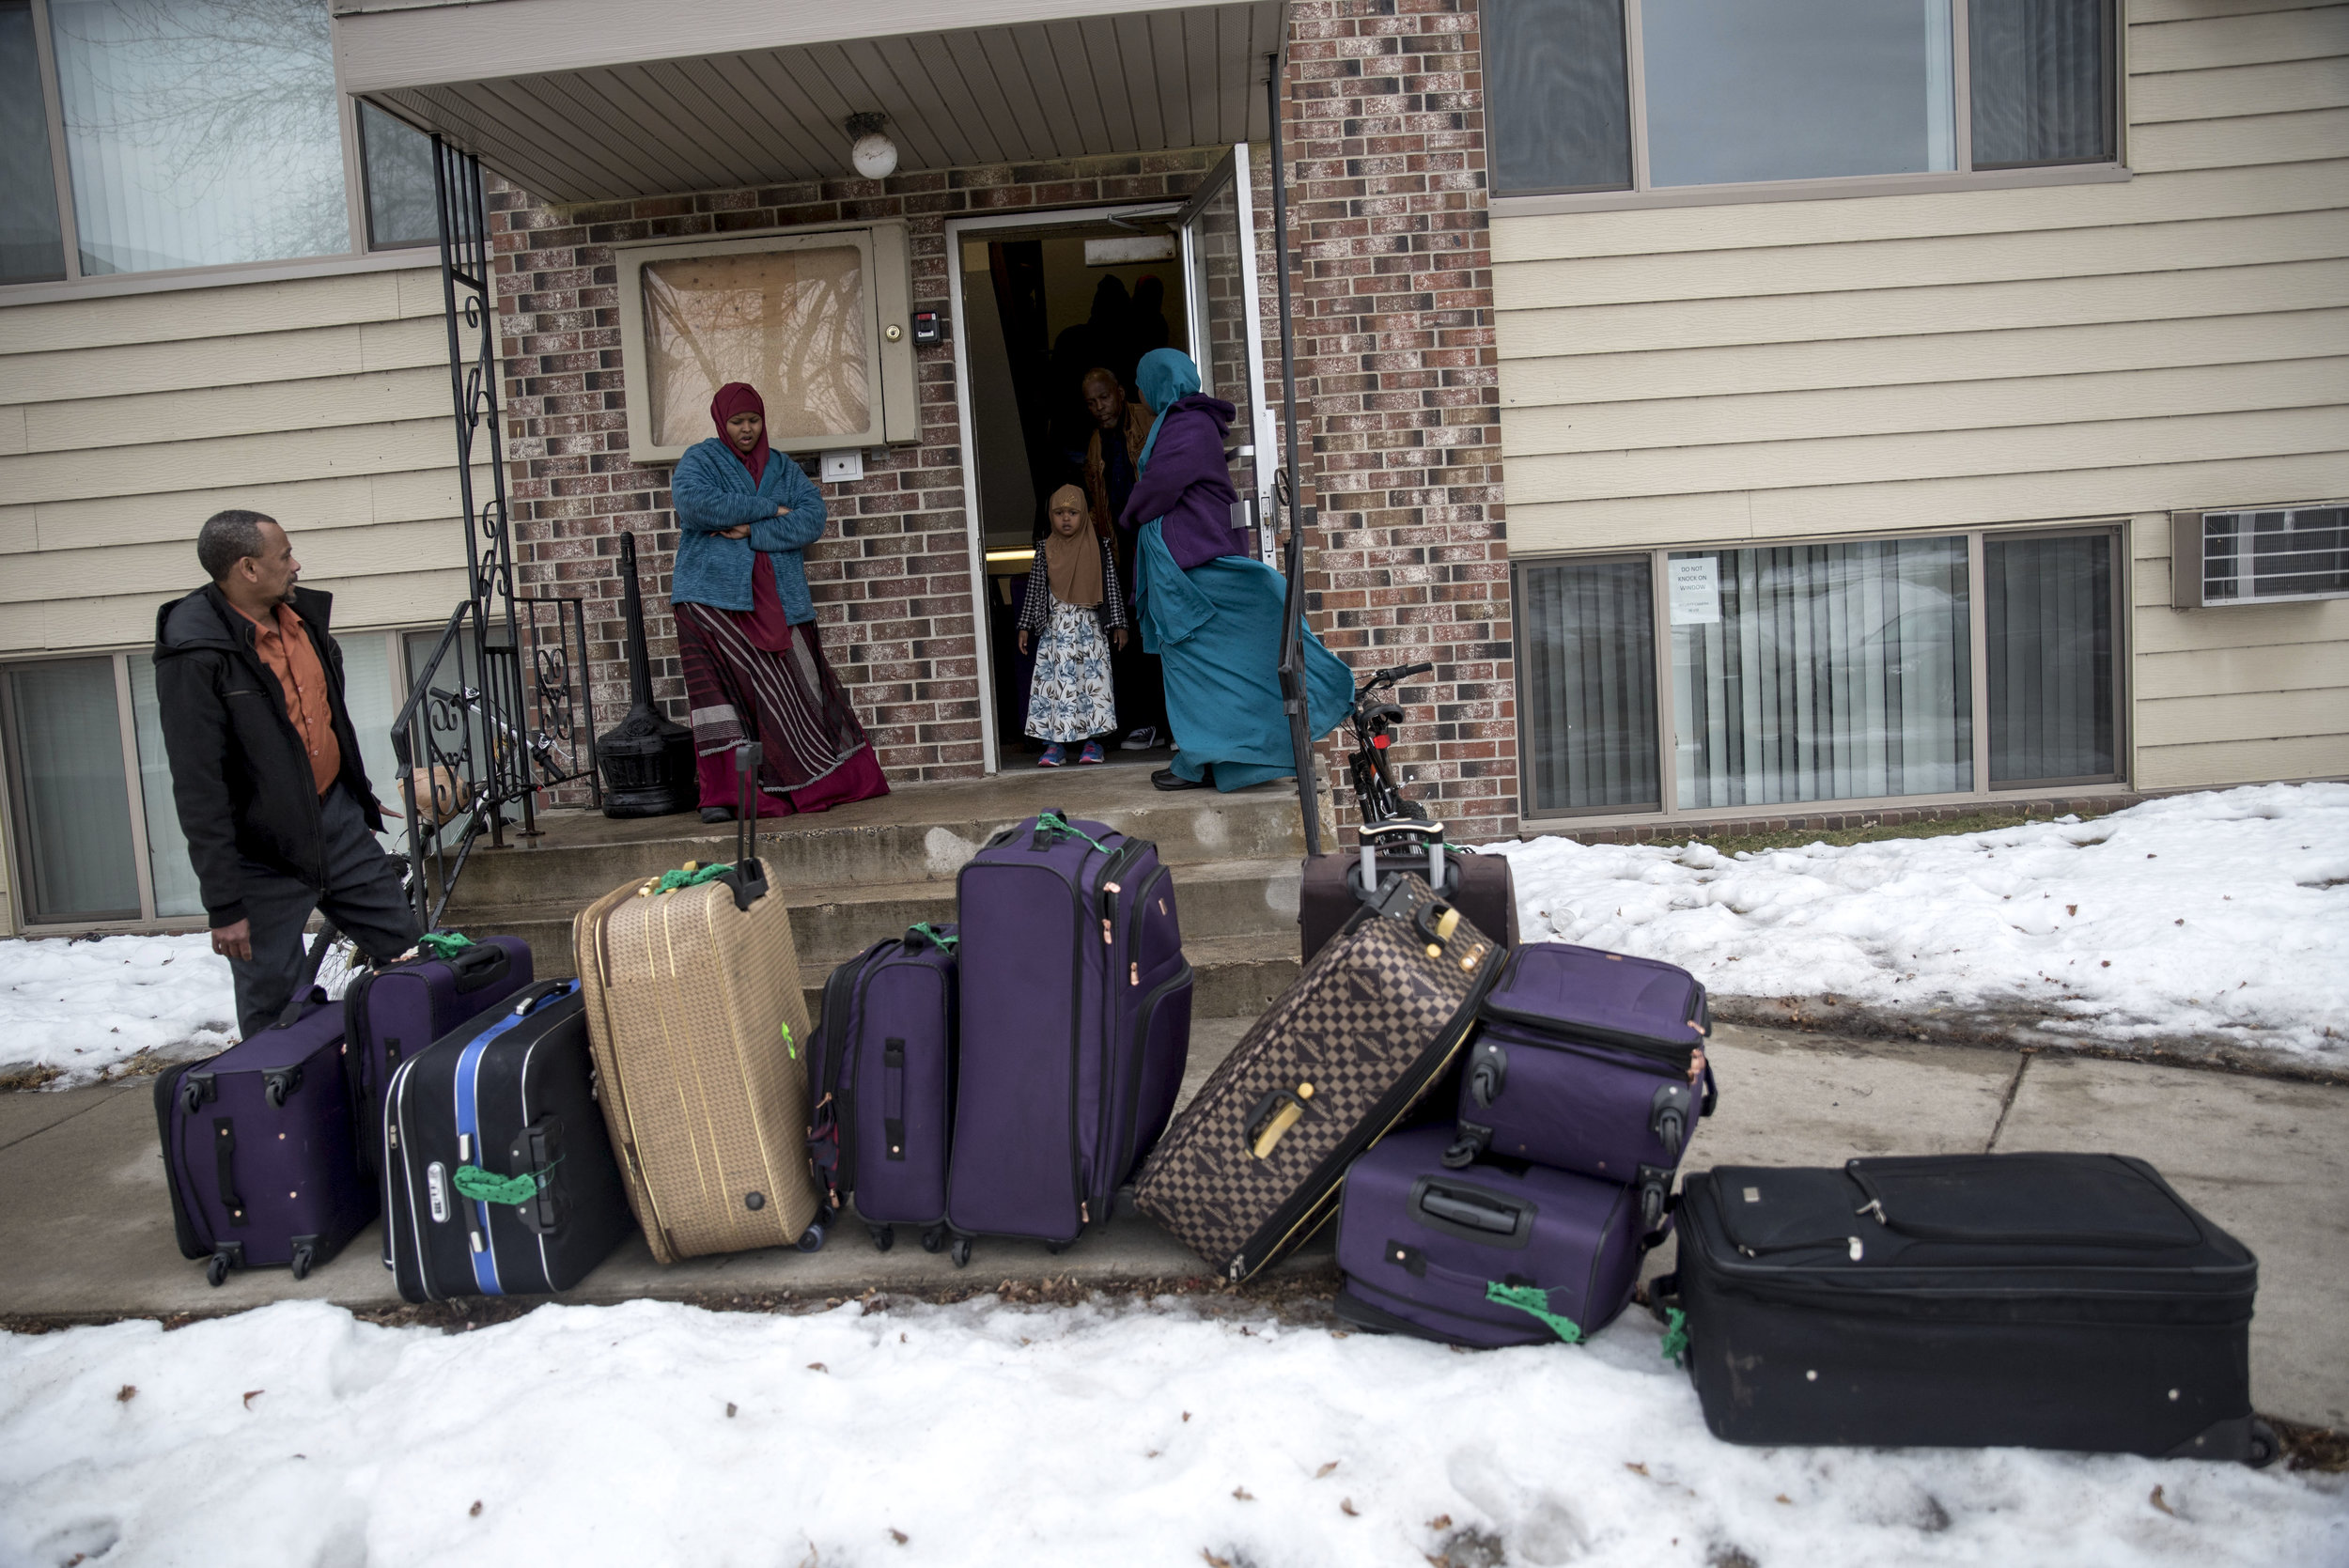 Kosar and her family members carry suitcases out of their apartment in Willmar to leave for the Minneapolis-Saint Paul International Airport Mar. 4. Eight of Kosar's siblings and her two parents are flying back to stay in Garissa, a city in Kenya, for several years while she and her sister Ismahan Kosar stay in Willmar. The Kosar's traveled back to Kenya to allow the children to familiarize themselves with the family's culture.